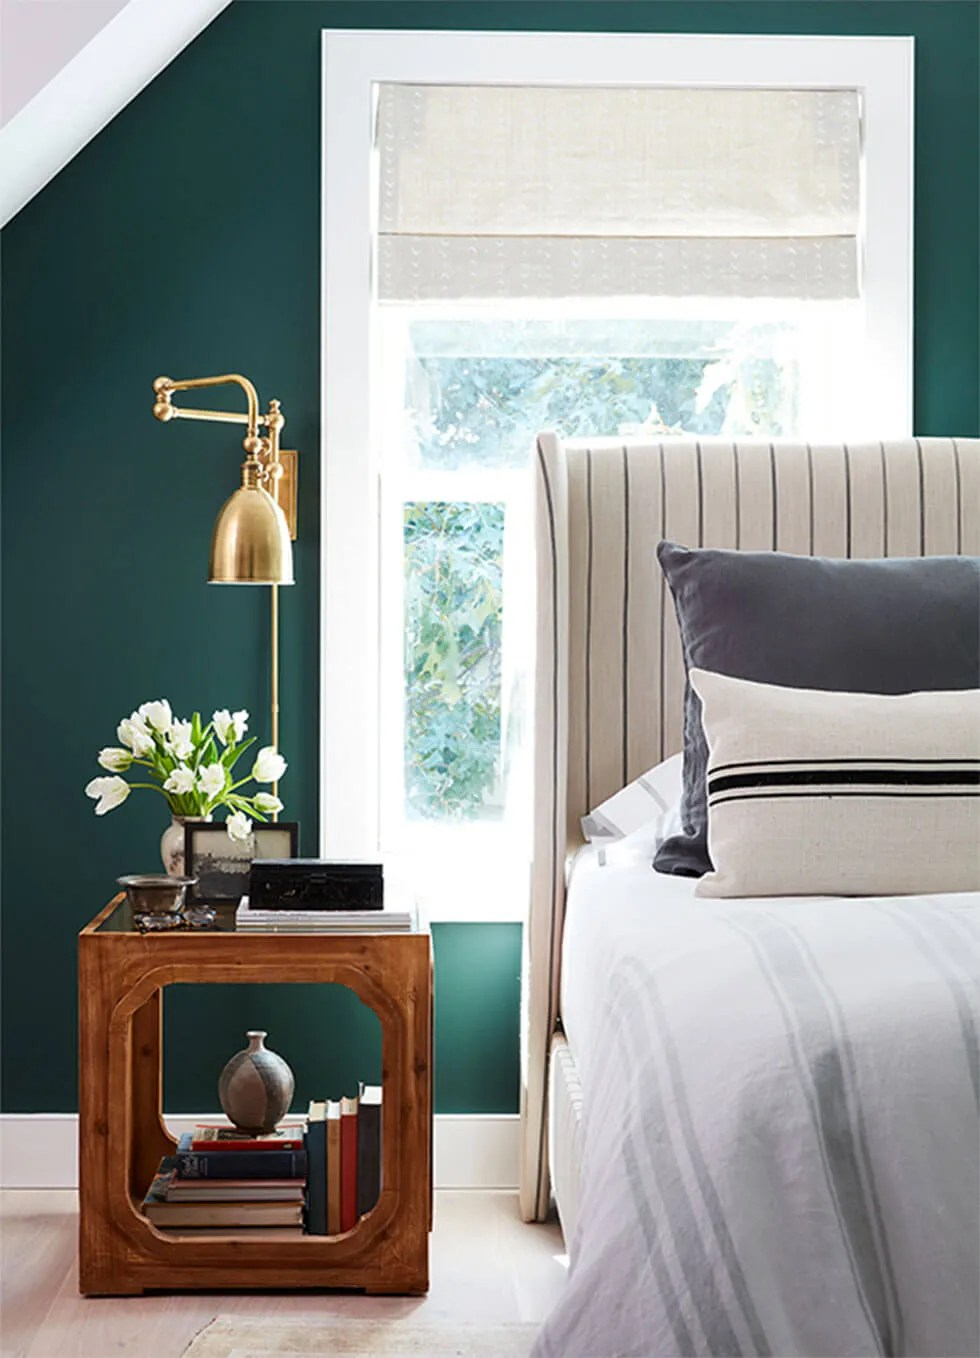 7 Inspiring Ideas For Your Bedroom Walls Furniture Choice